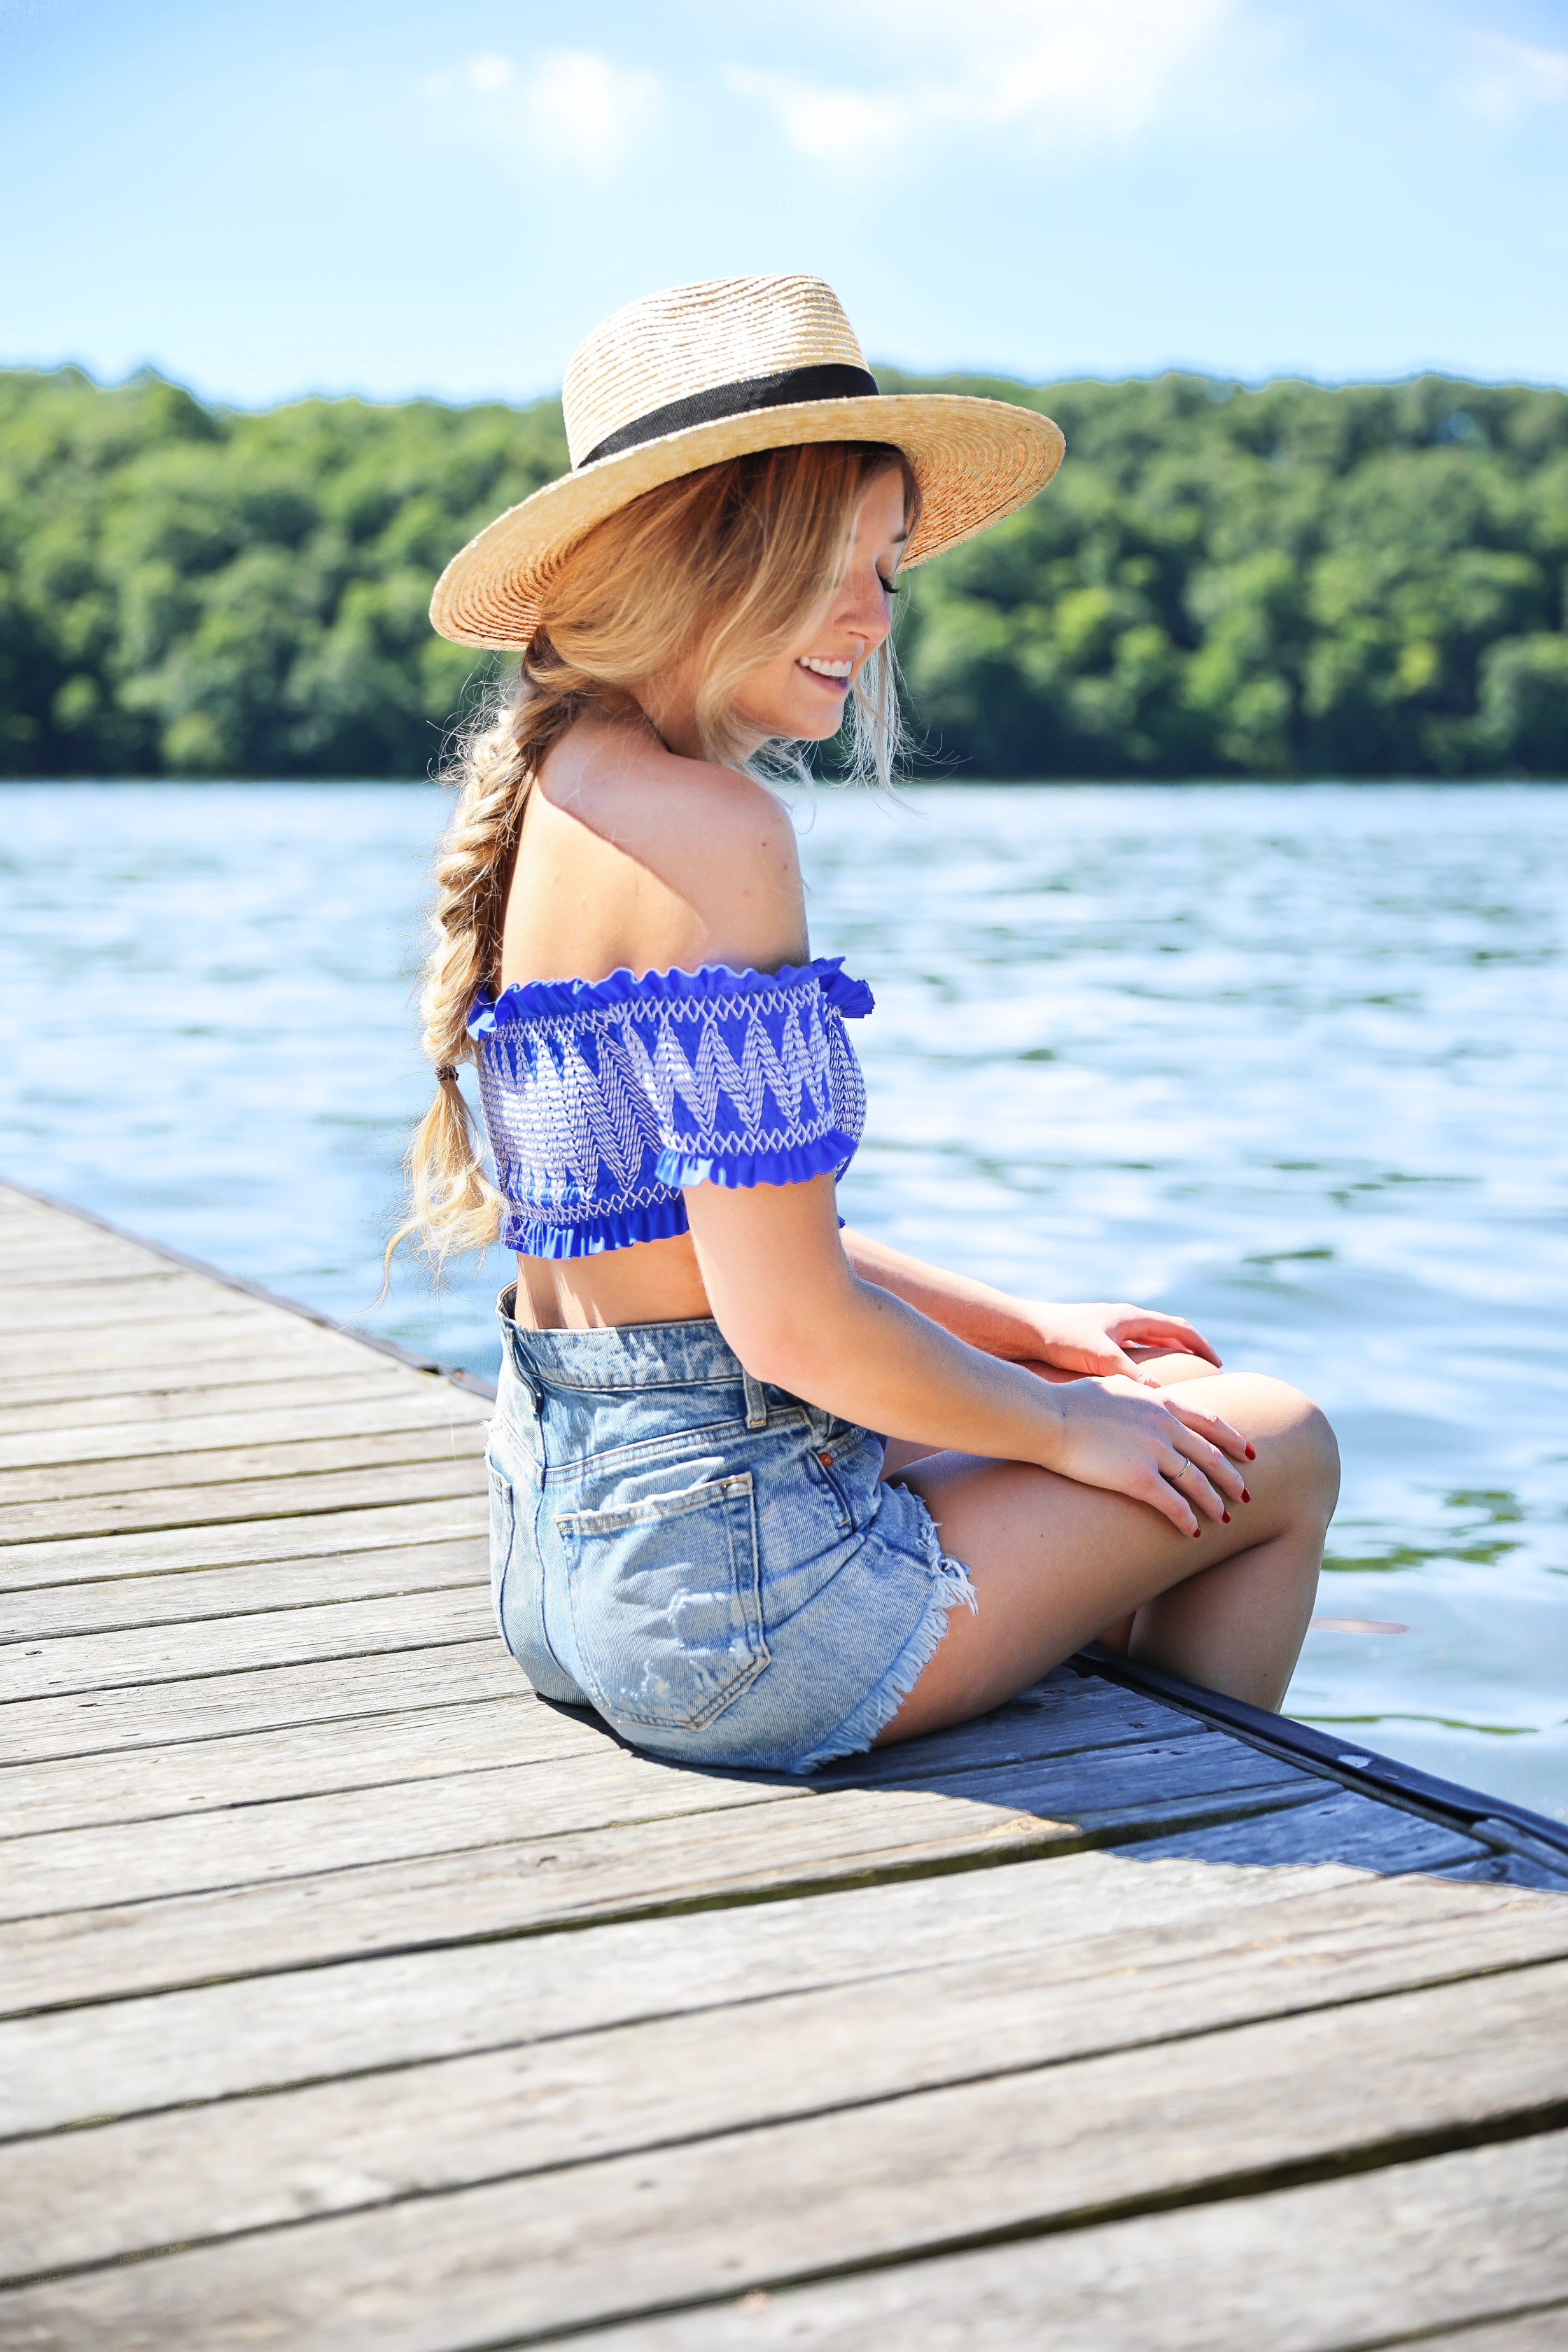 Hair care routine for summer! Royal blue Ted Baker London Smocked Bardot Bikini Top! I love this off the shoulder swimsuit, plus the colors is adorable! Paired with jean shorts at the lake! Perfect summer outfit! Details on fashion blog daily dose of charm by lauren lindmark